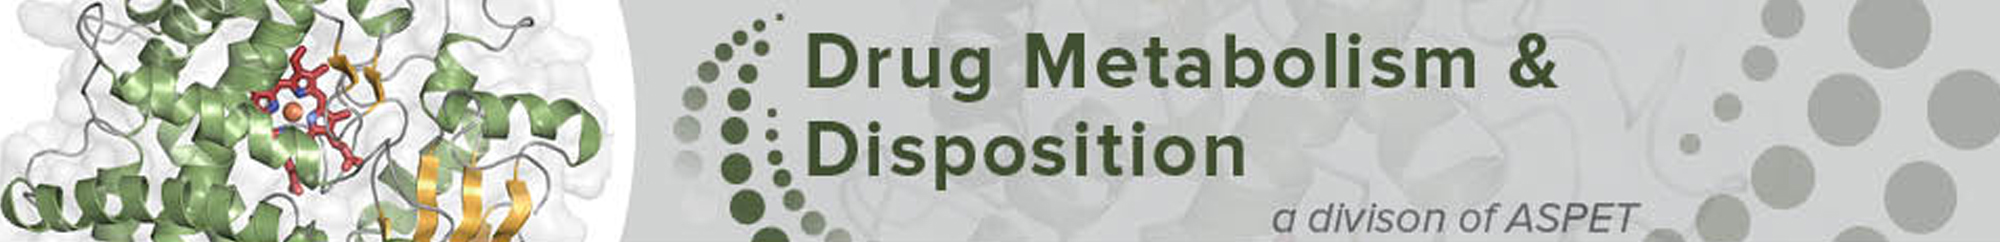 Drug Metabolism and Disposition